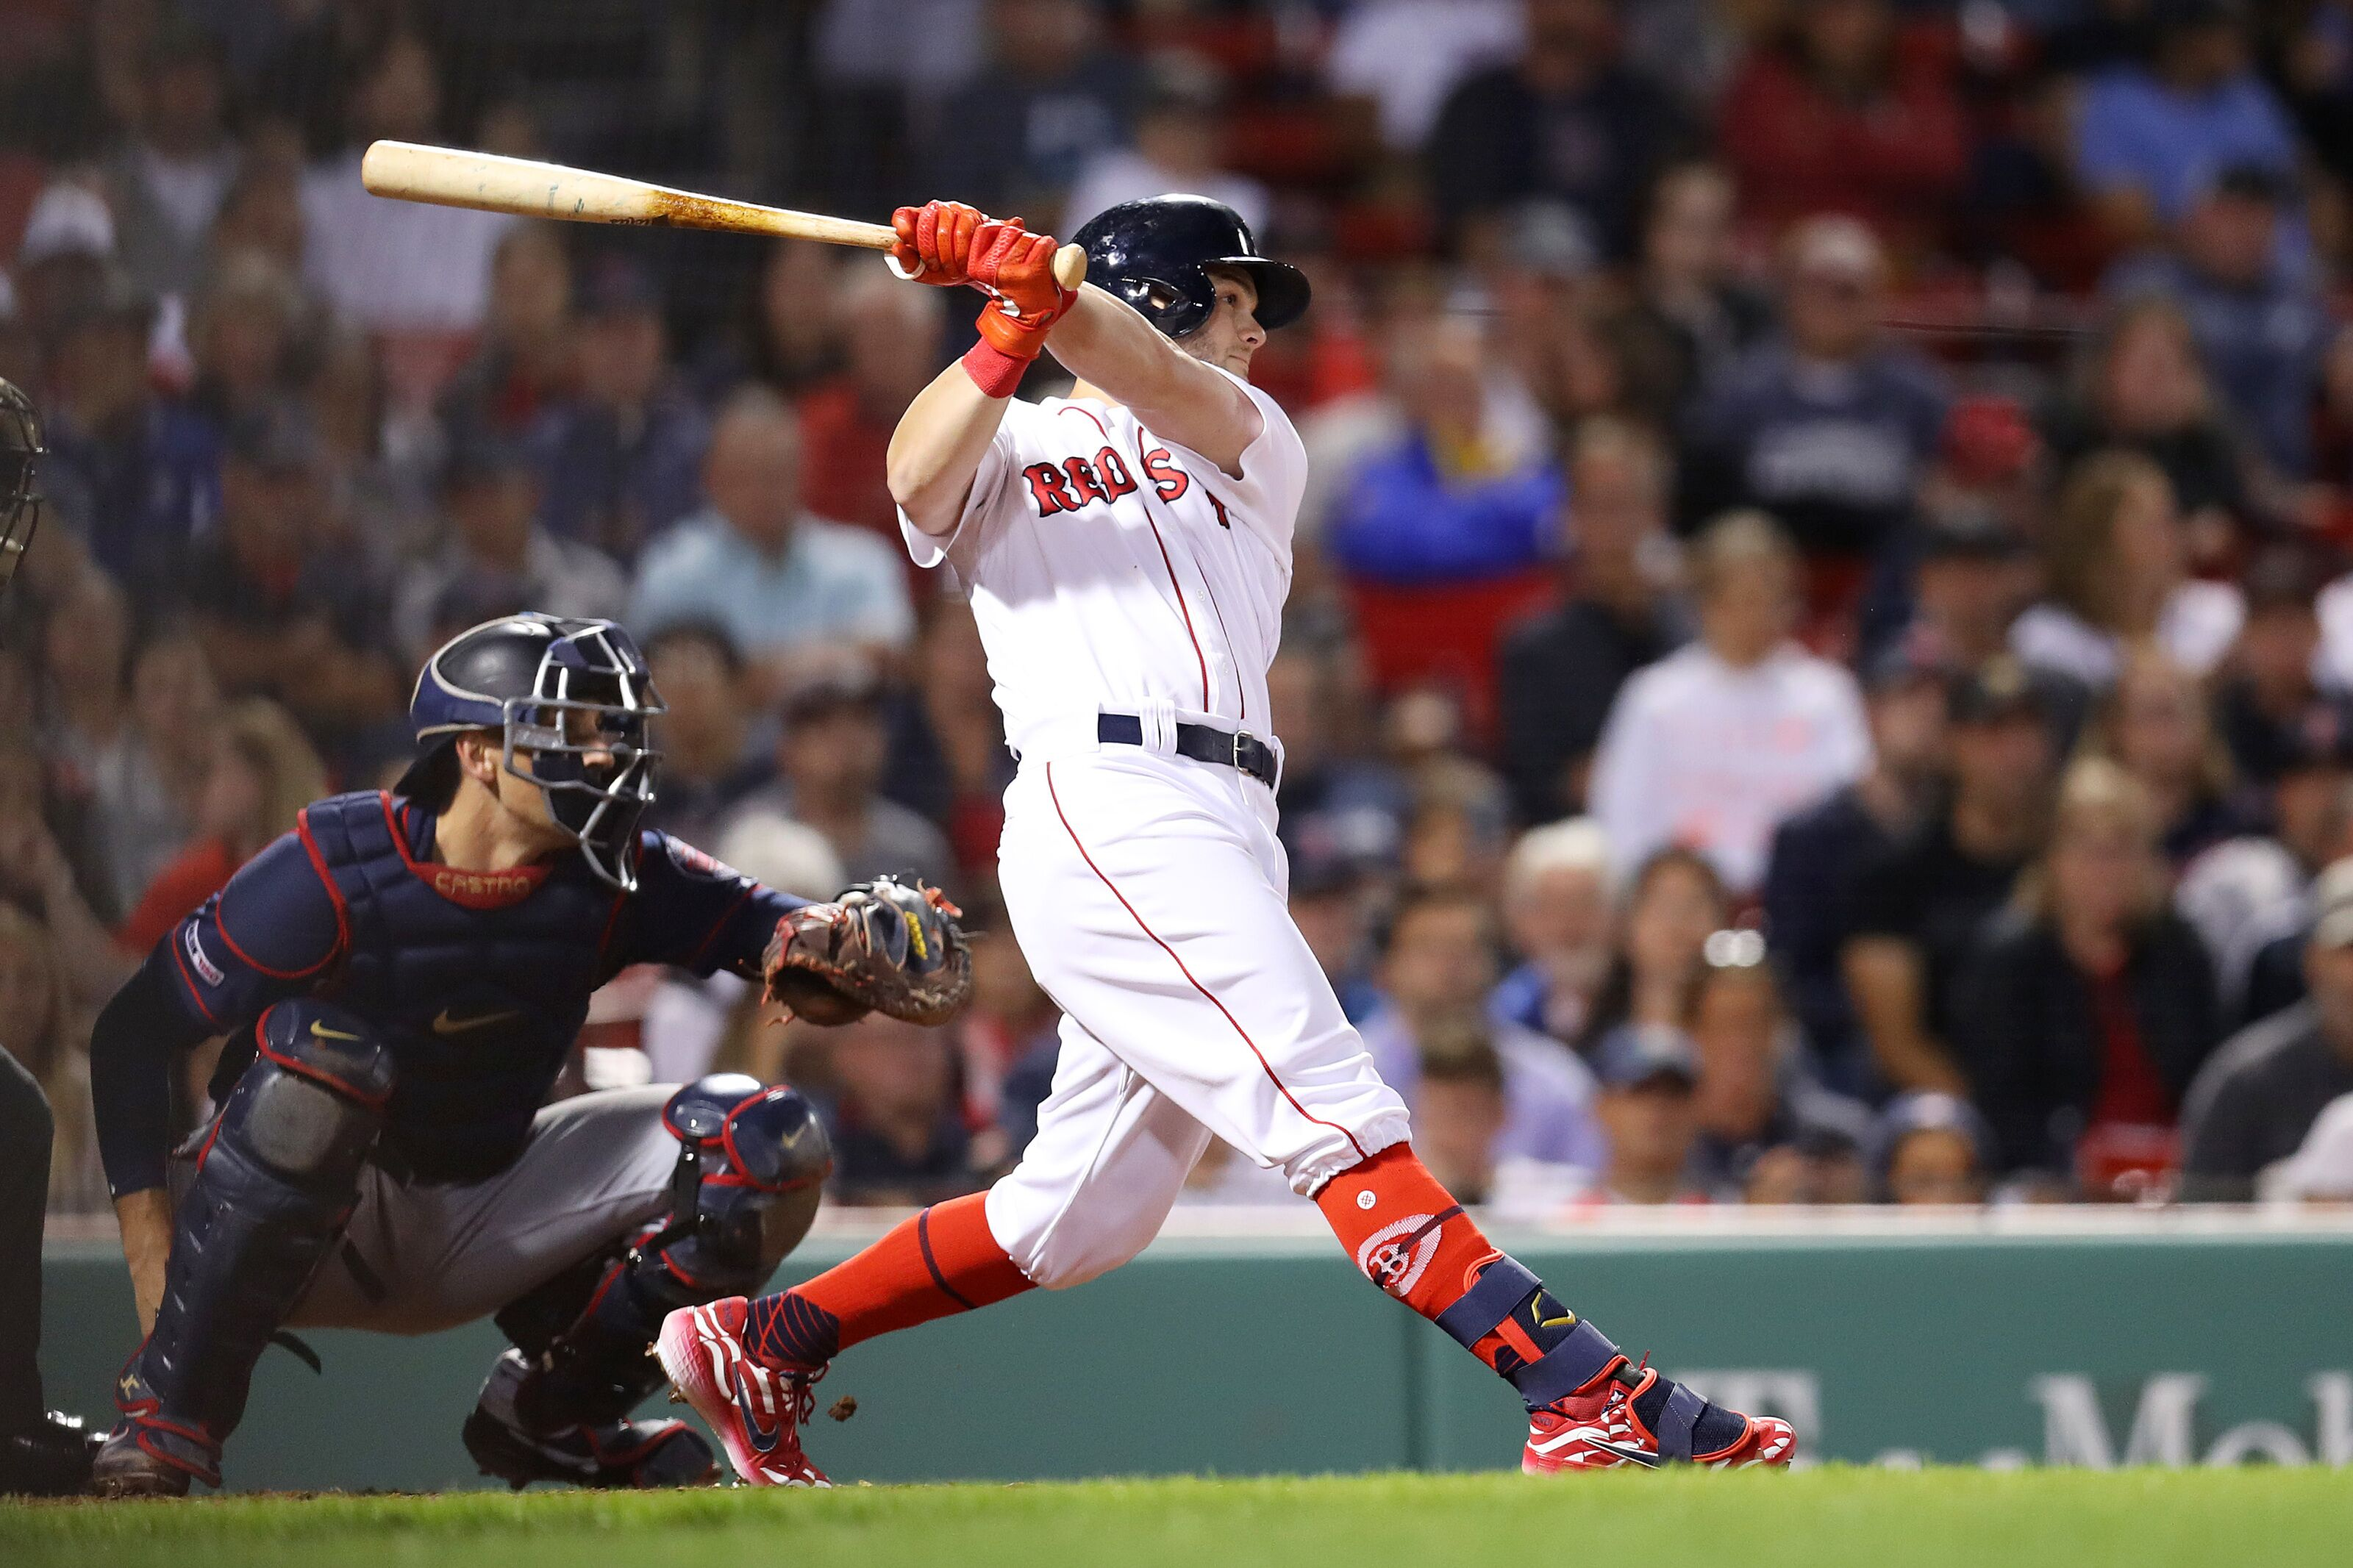 Red Sox Rumors: Teams asking for outfielder Andrew Benintendi in trade talks